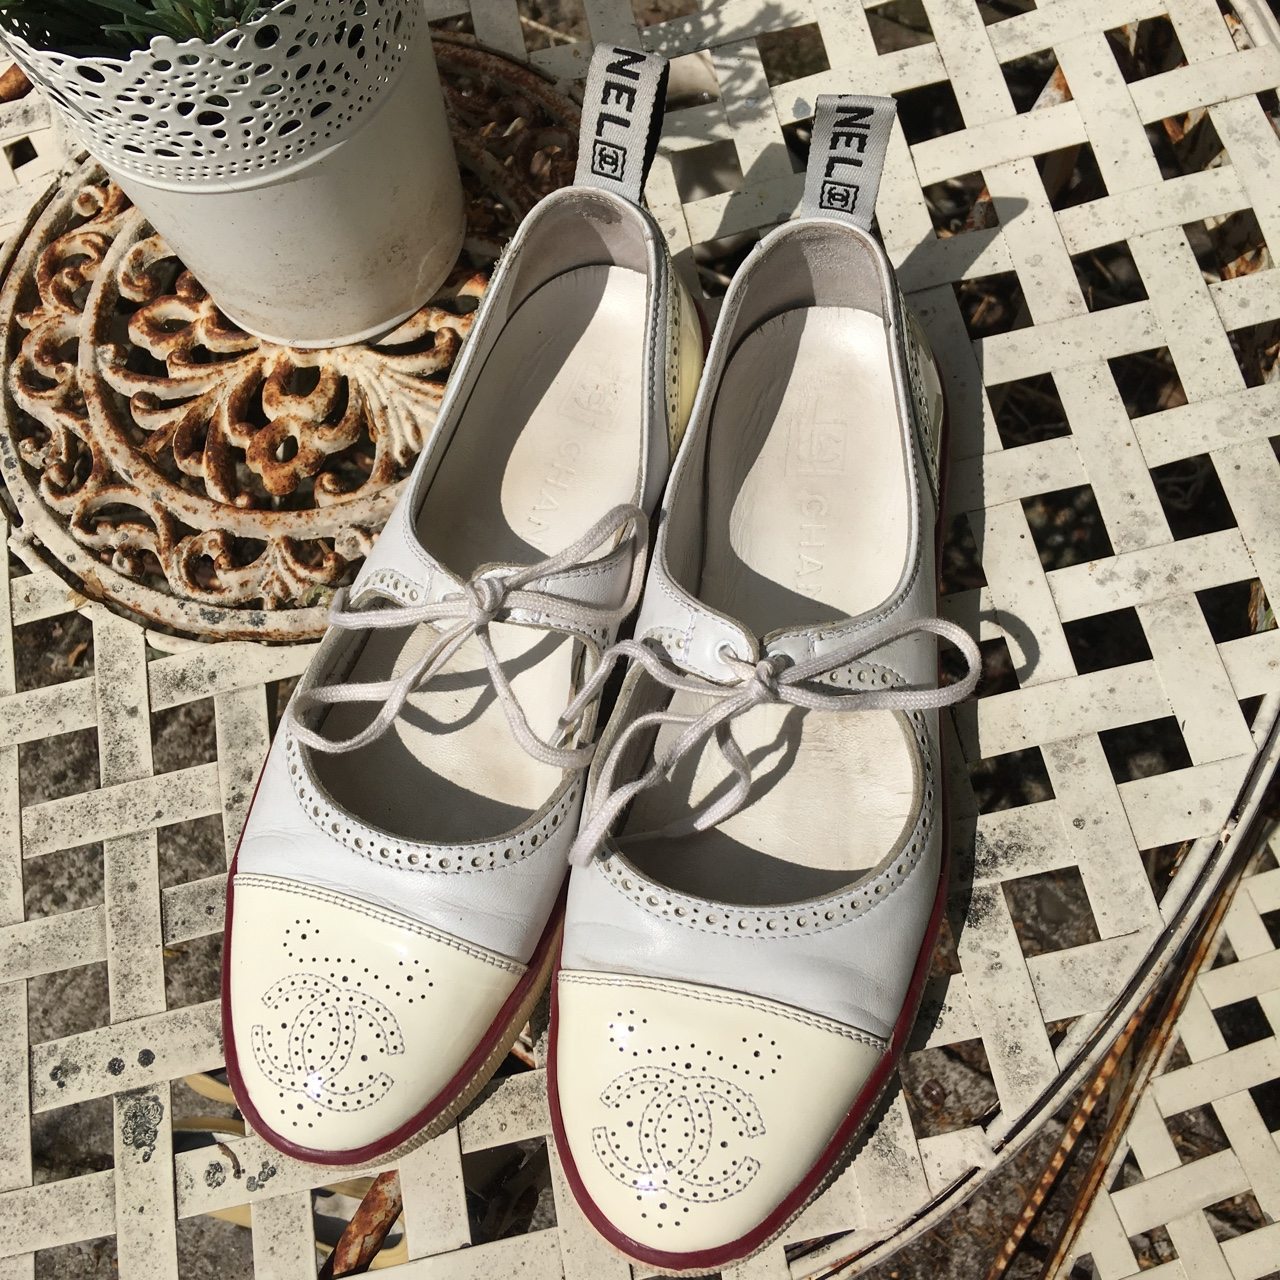 Chanel plimsolls size 7-8 used but